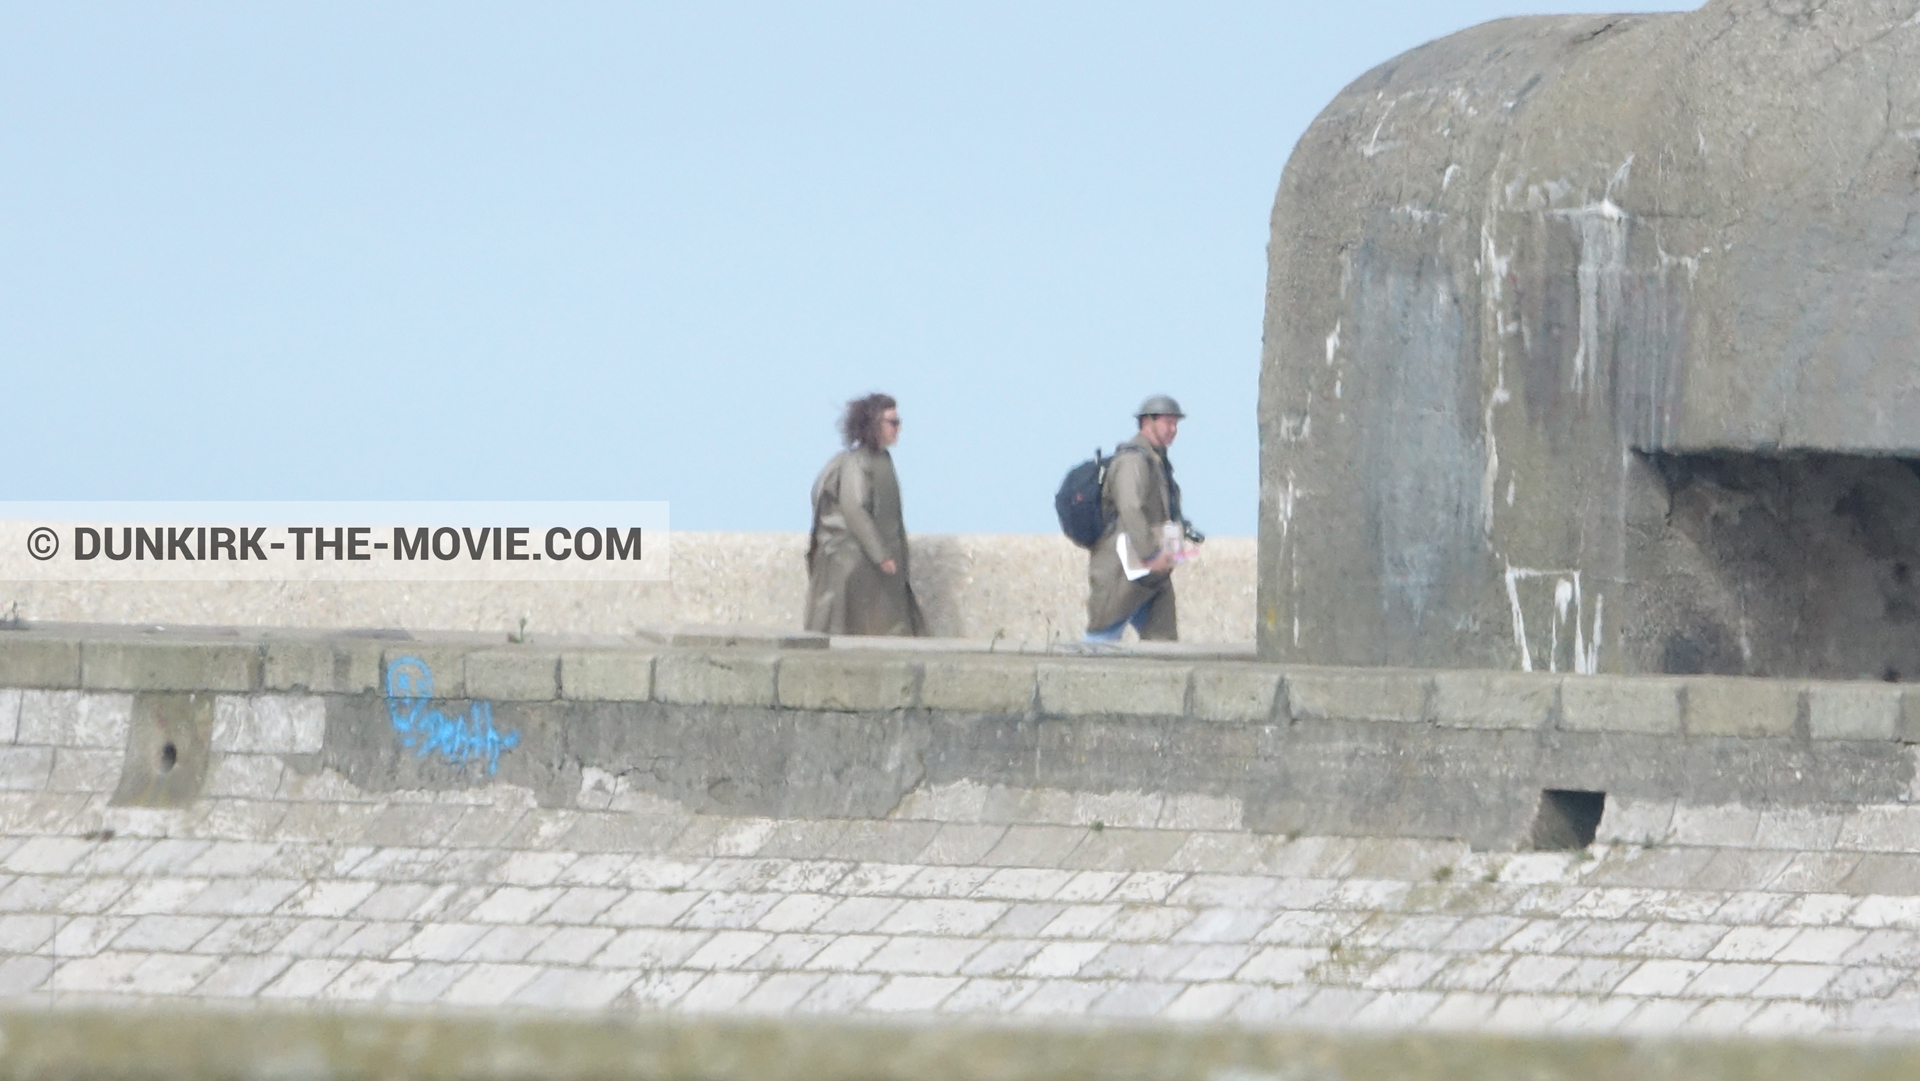 Photo on canvas number 1154, of the filming of the film Dunkirk